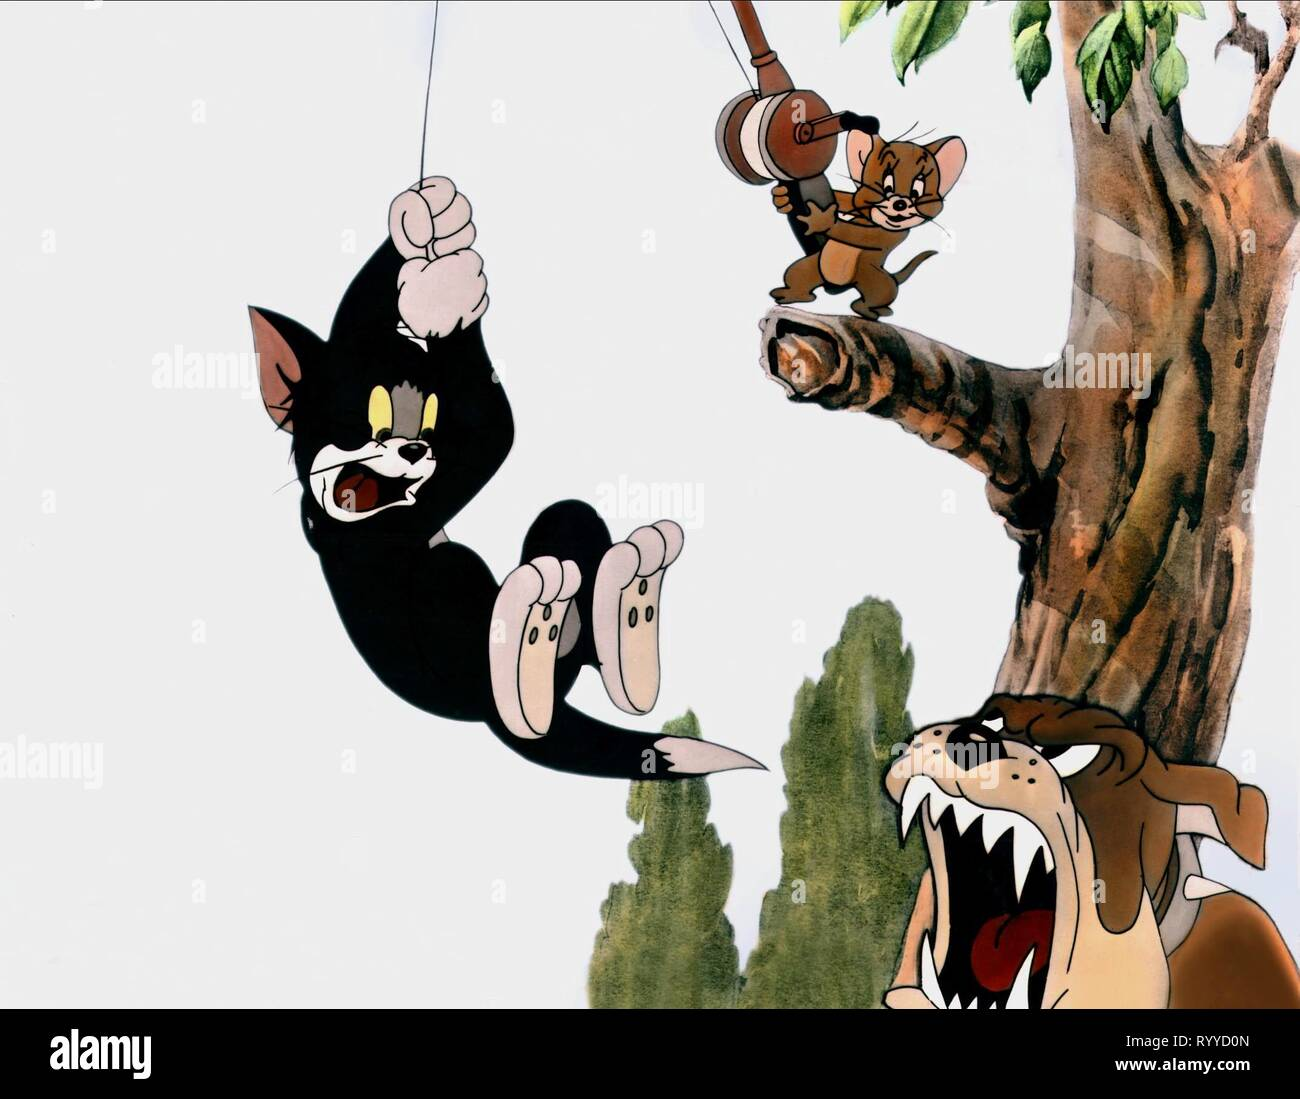 Tom And Jerry High Resolution Stock Photography And Images Alamy